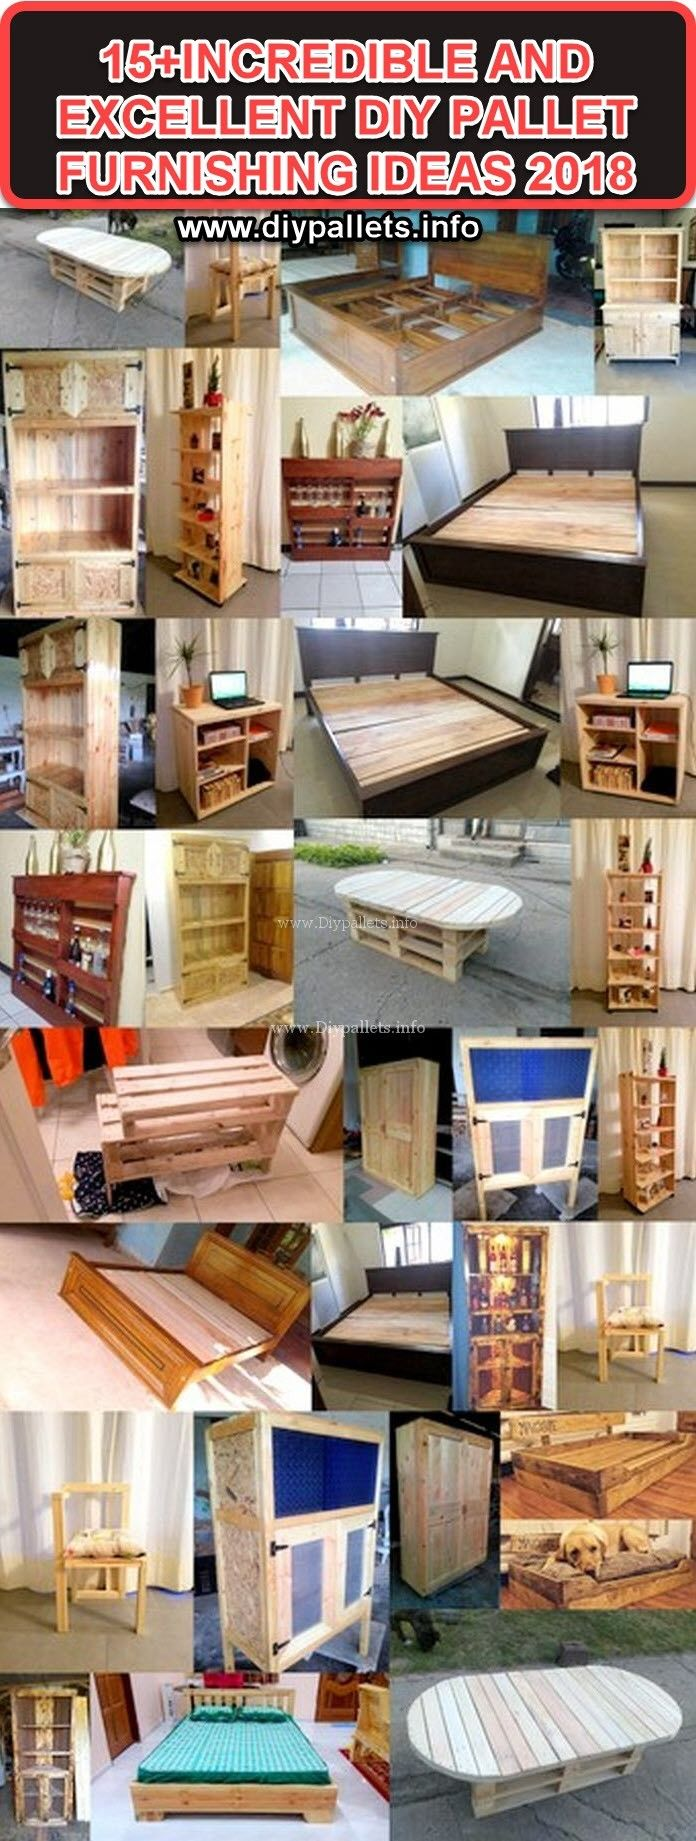 15INCREDIBLE AND EXCELLENT DIY PALLET FURNISHING IDEAS